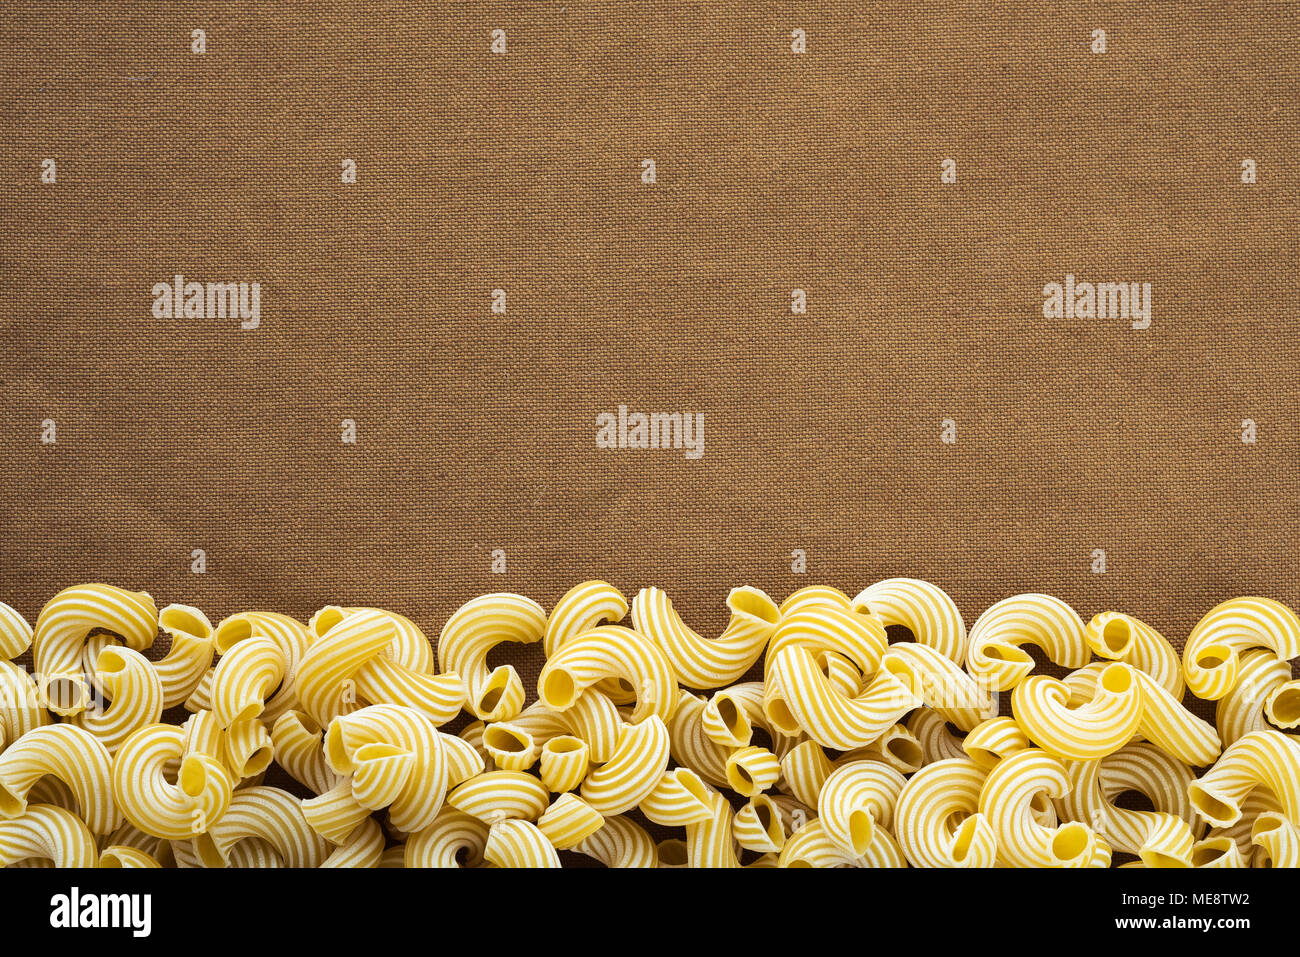 Raw cavatappi Beautiful decomposed pasta from the bottom on a rustic brown  textured background. Close-up view from the top. Free space for text.